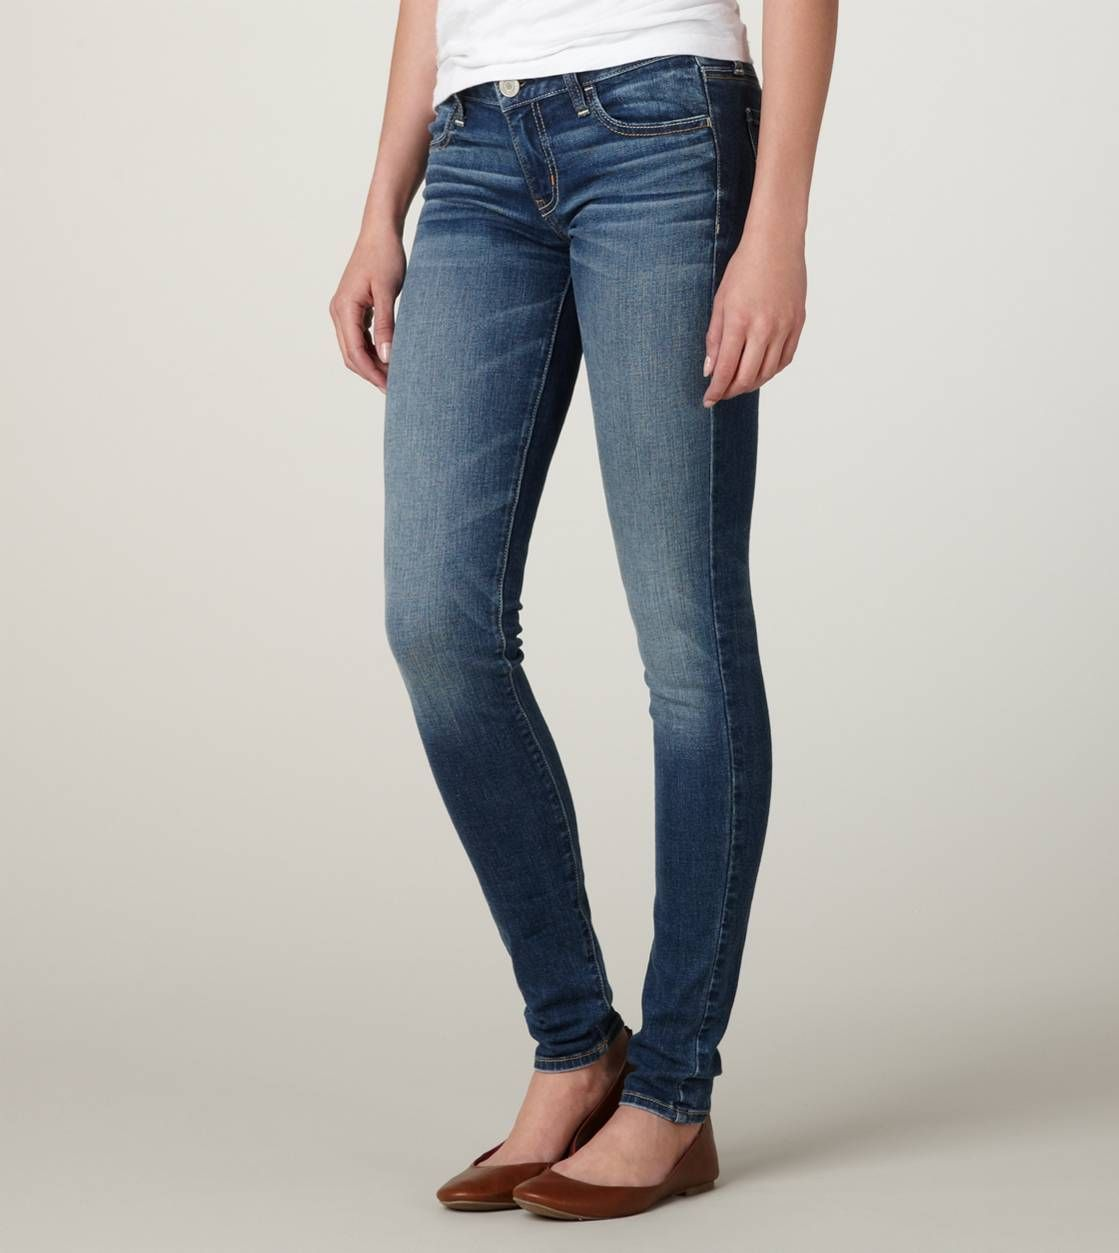 American Eagle jegging | All I want for Christmas is ...